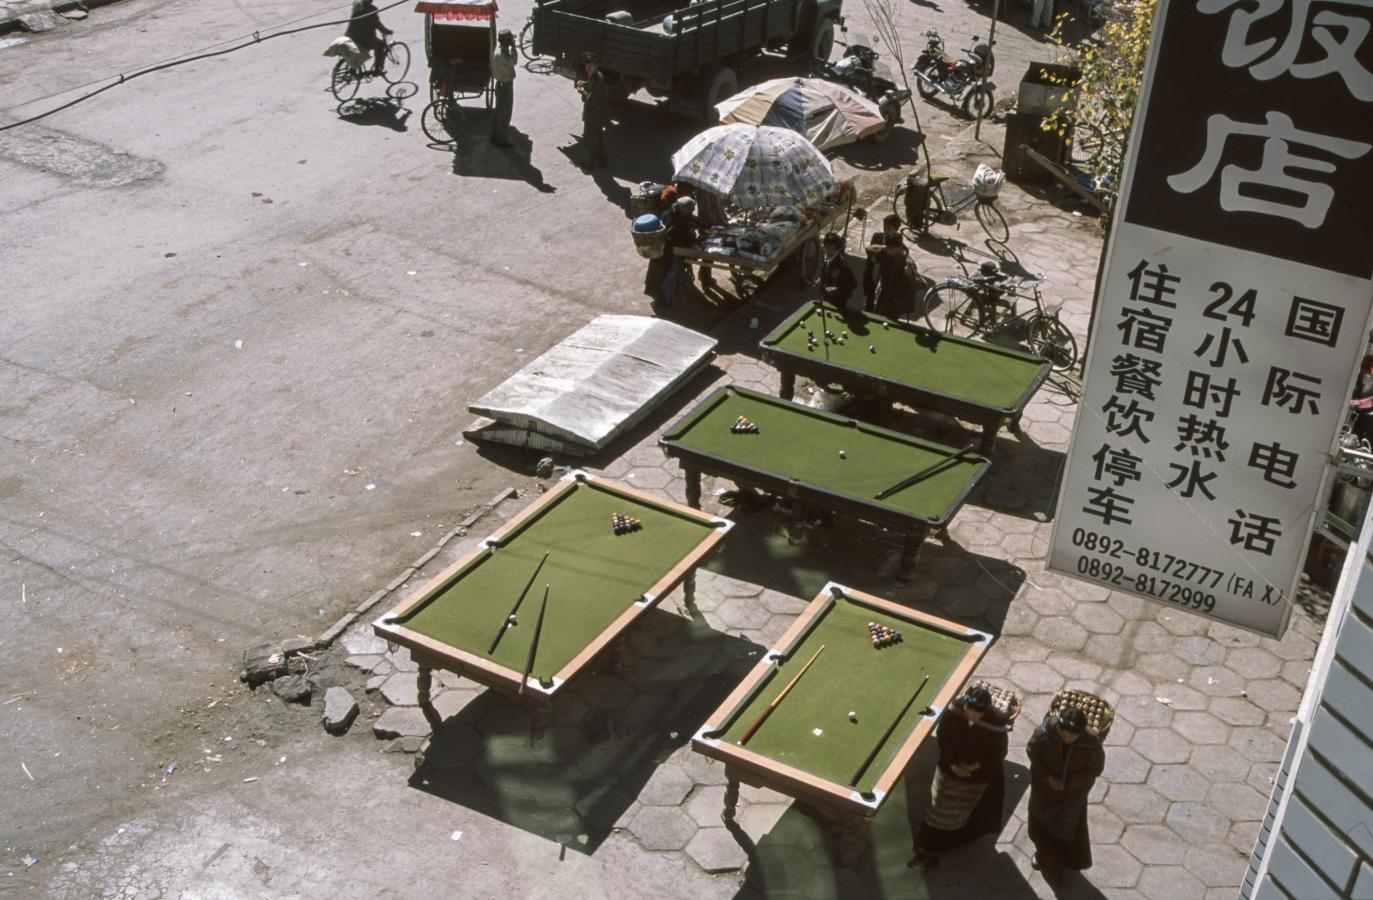 pool-tables-in-the-street-shigatse-tibet-2000-